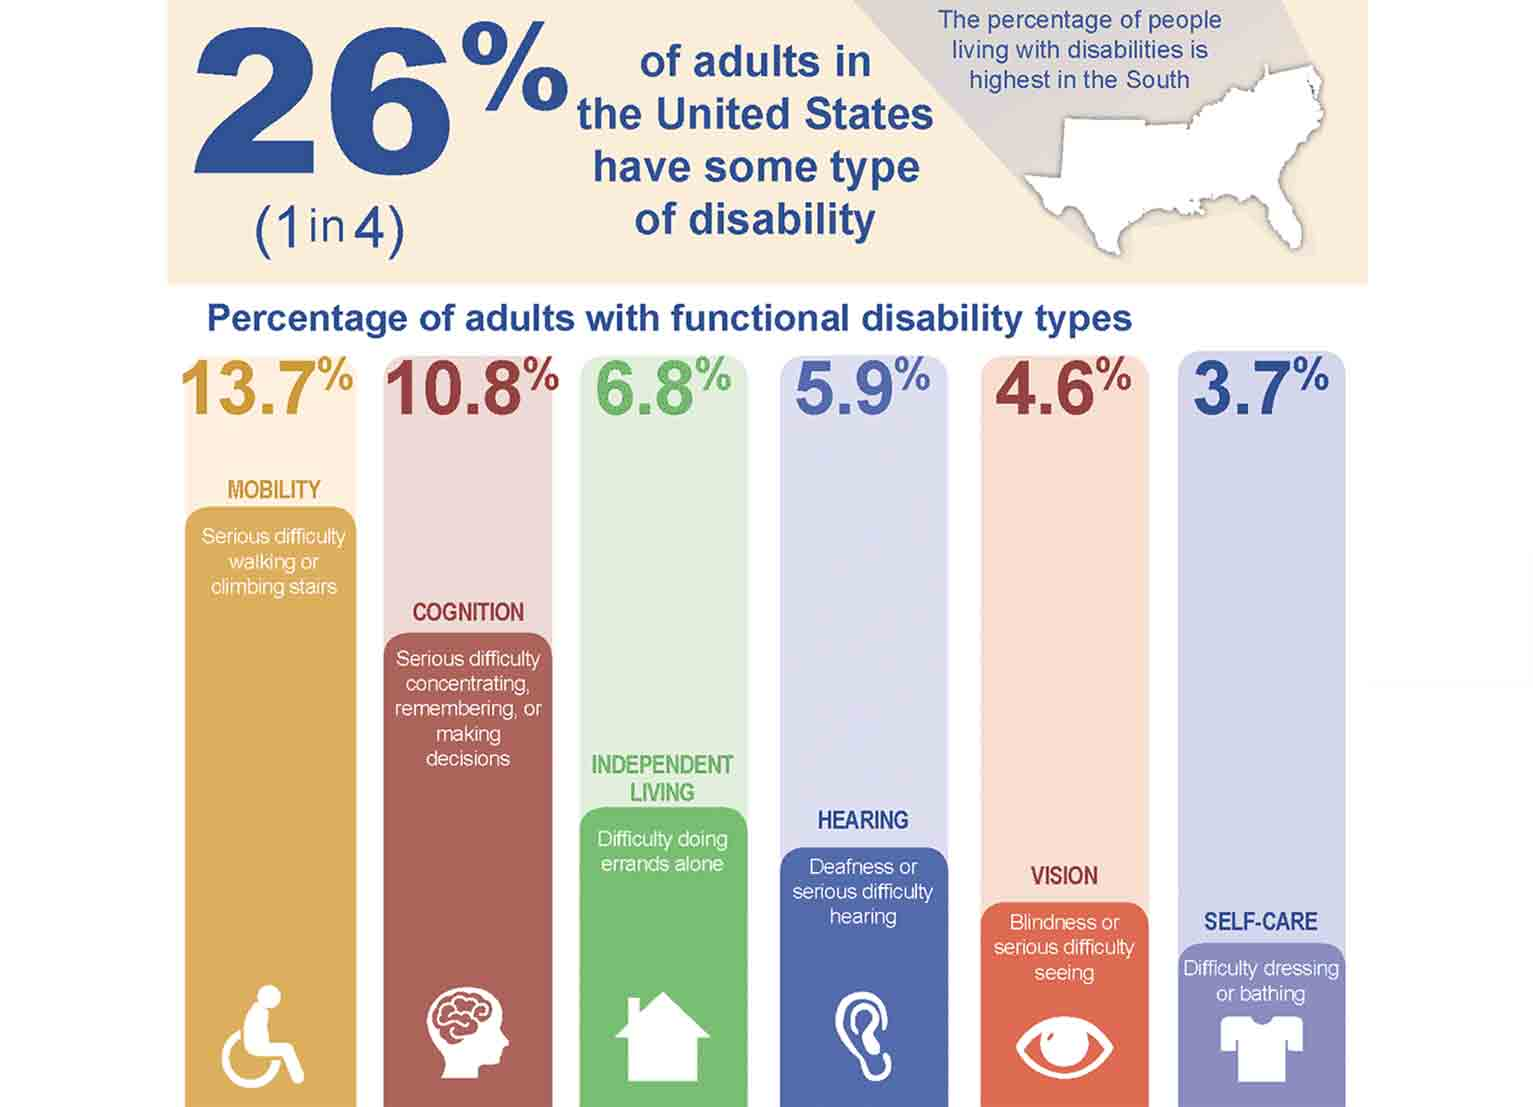 About 1 in 4 Americans has some form of disability, according to the Centers for Disease Control and Prevention.